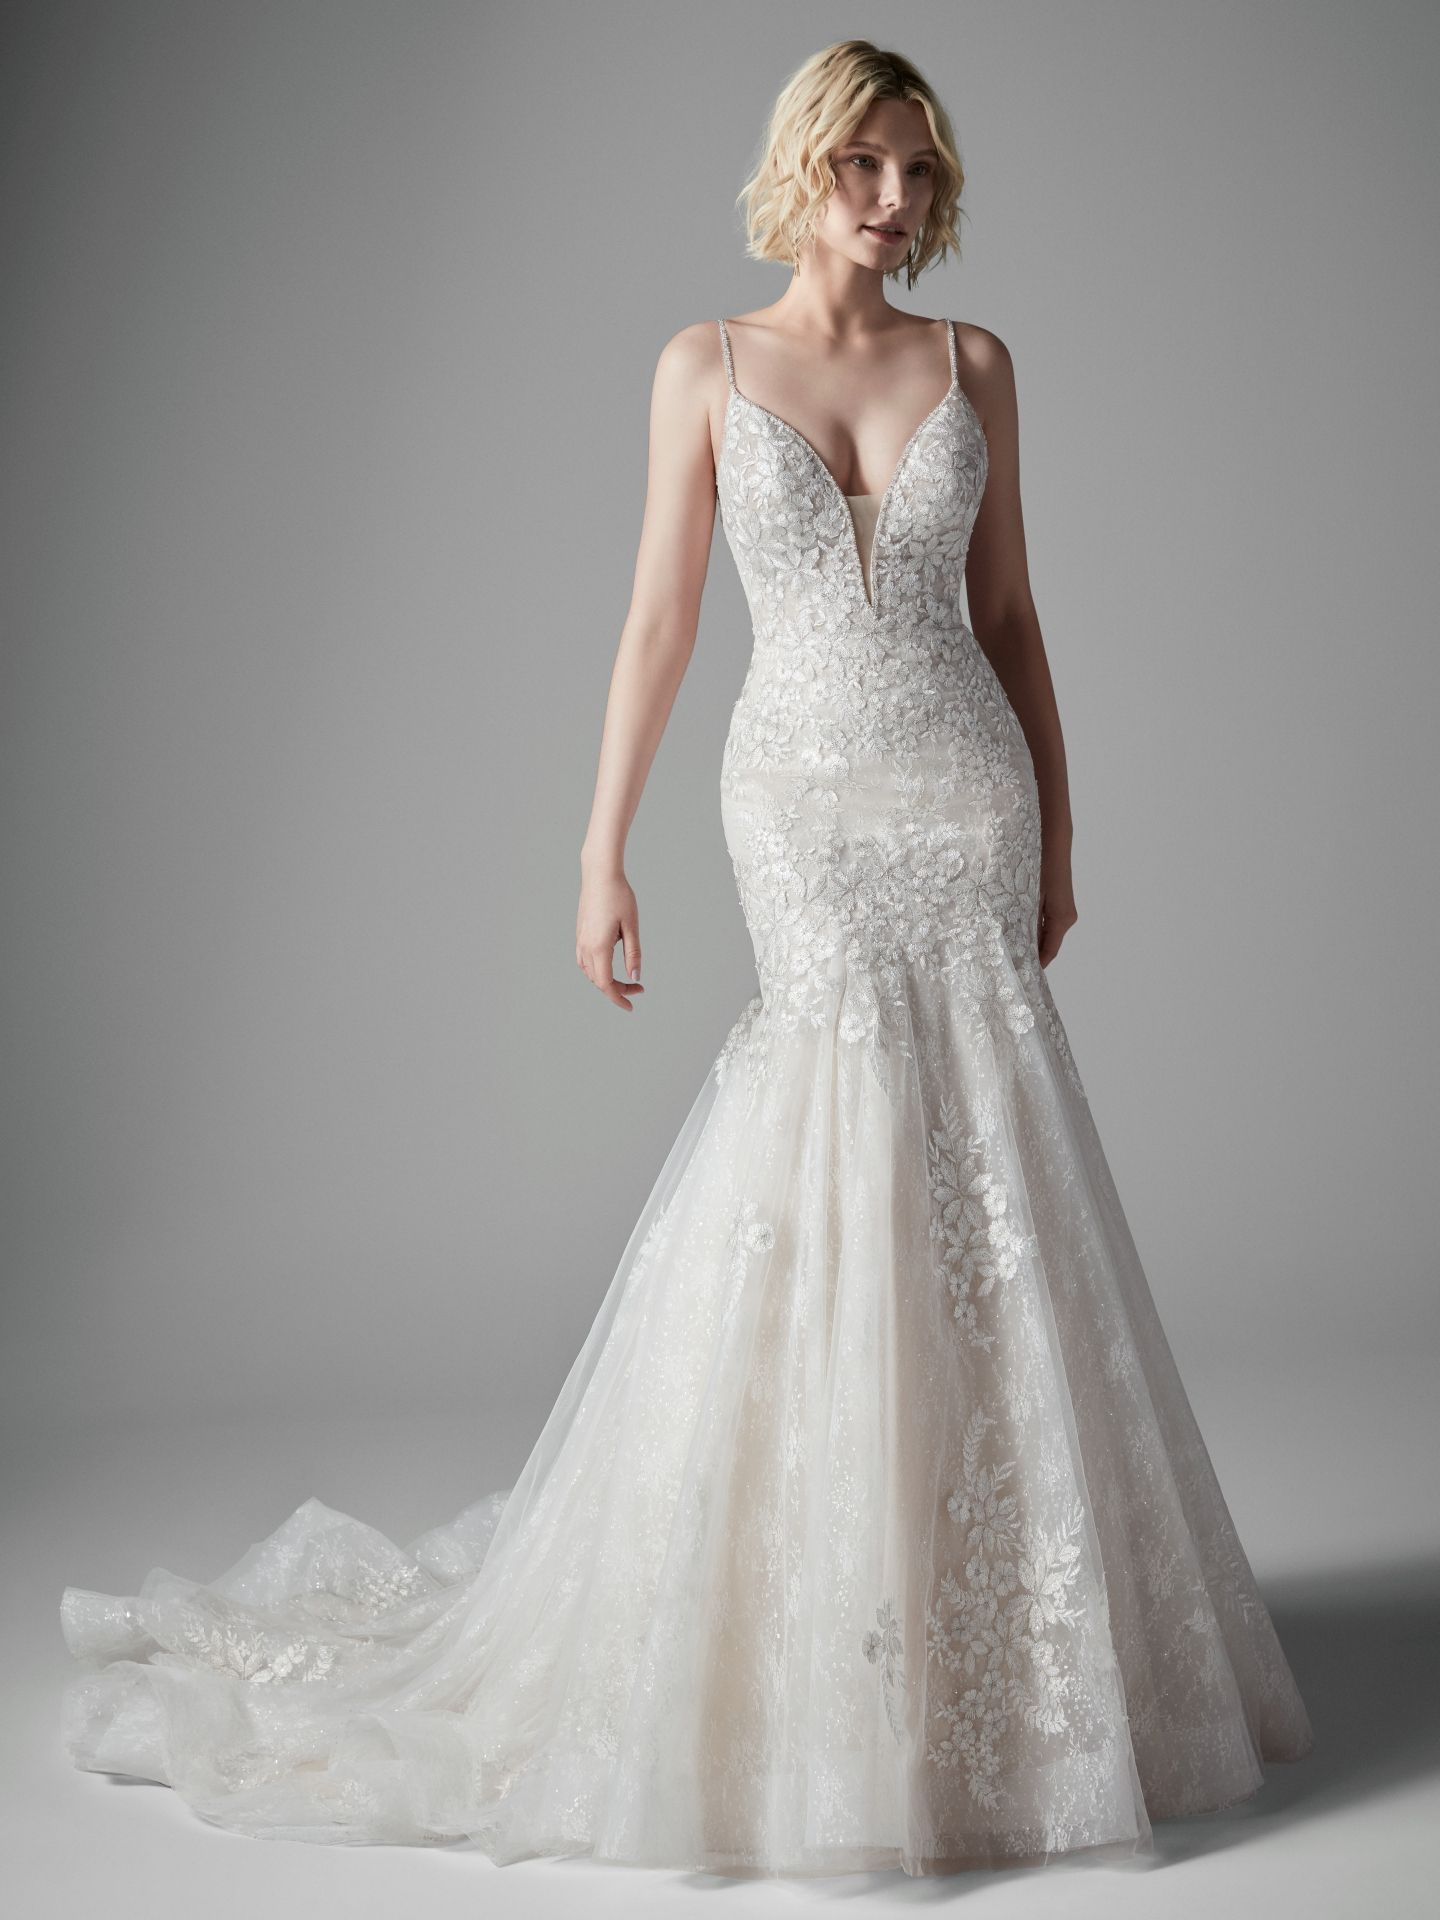 Home in 2020 Sottero, midgley wedding dresses, Lace